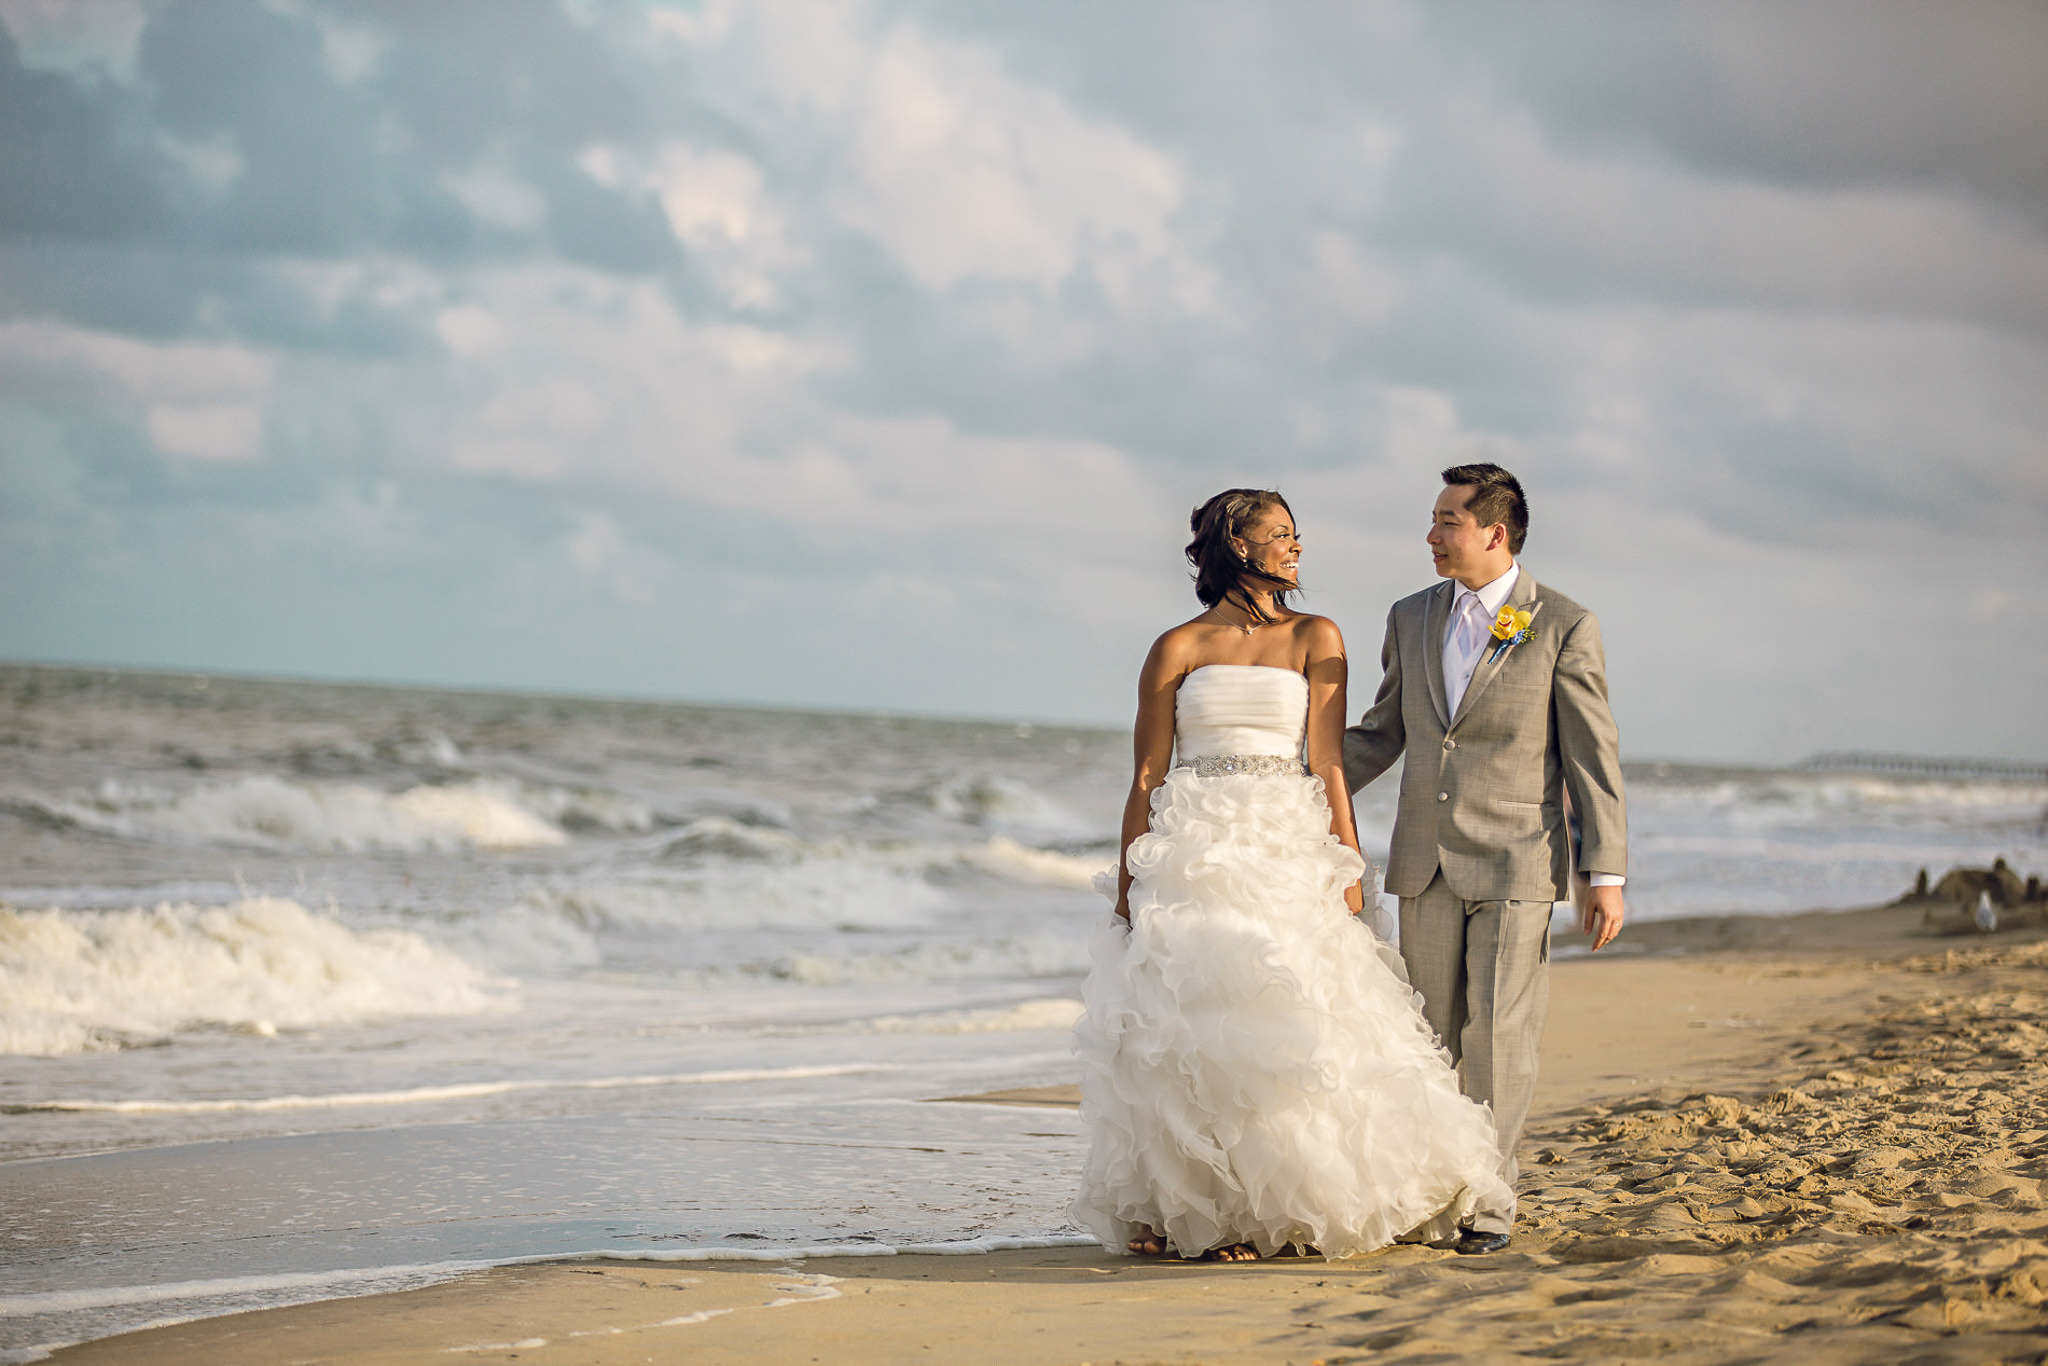 oceanaire resort hotel wedding photographers & chesapeake fine art wedding Photography wedding gallery